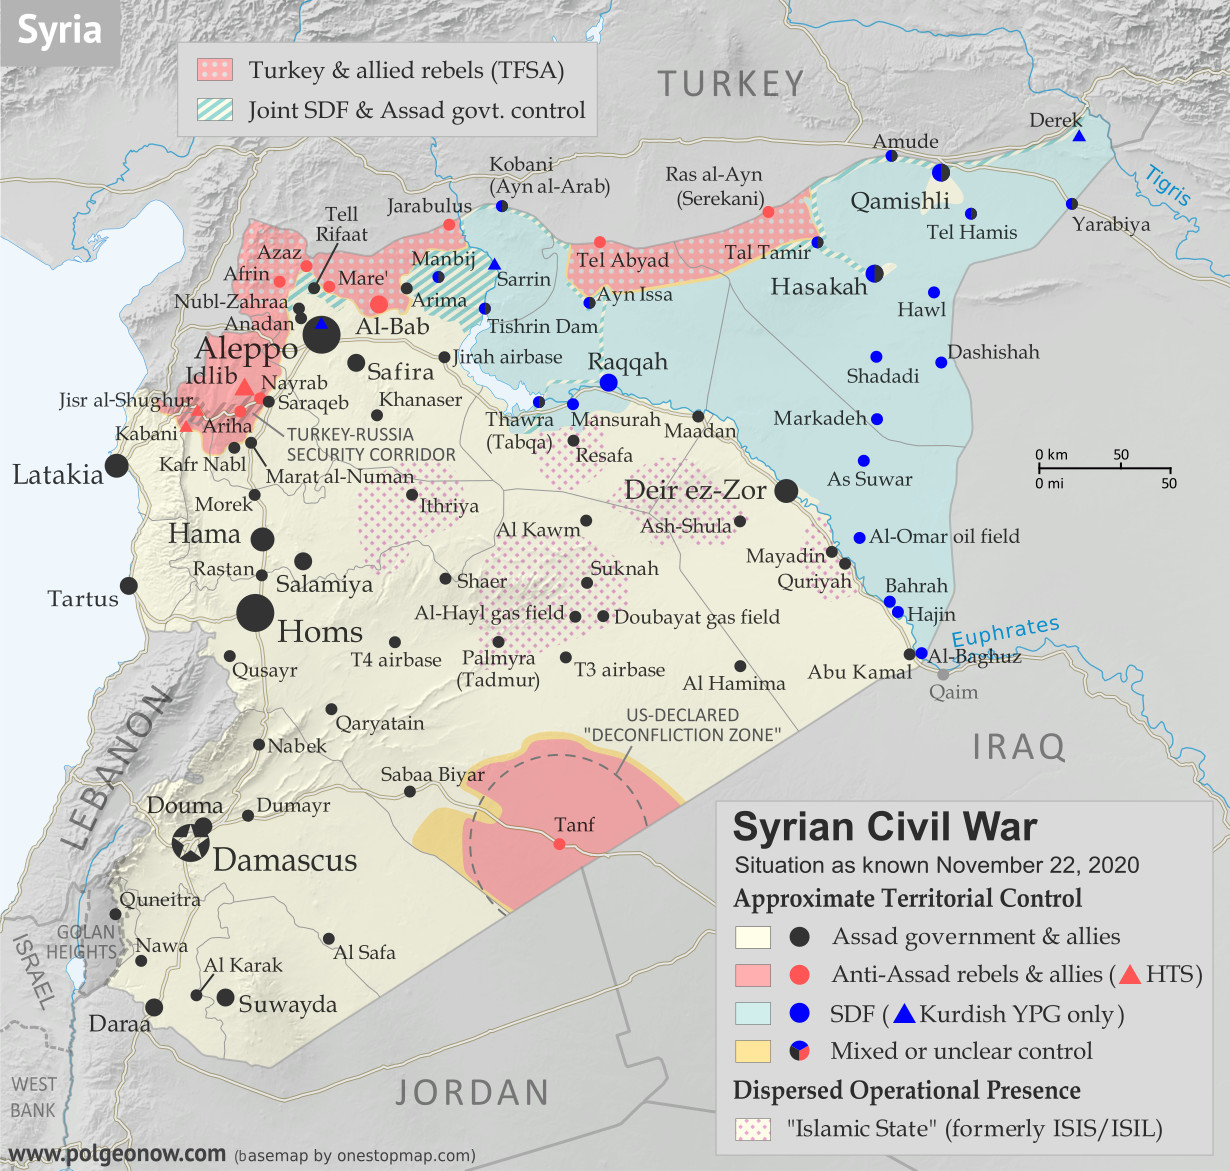 Syrian Civil War map: Territorial control in Syria in late November 2020 (Free Syrian Army rebels, Kurdish YPG, Syrian Democratic Forces (SDF), Hayat Tahrir al-Sham (HTS / Al-Nusra Front), and others). Includes areas of dispersed operational presence for so-called Islamic State (ISIS/ISIL), Turkish/TFSA control, joint SDF-Assad control, US deconfliction zone, and Turkey-Russia security corridor. Colorblind accessible.